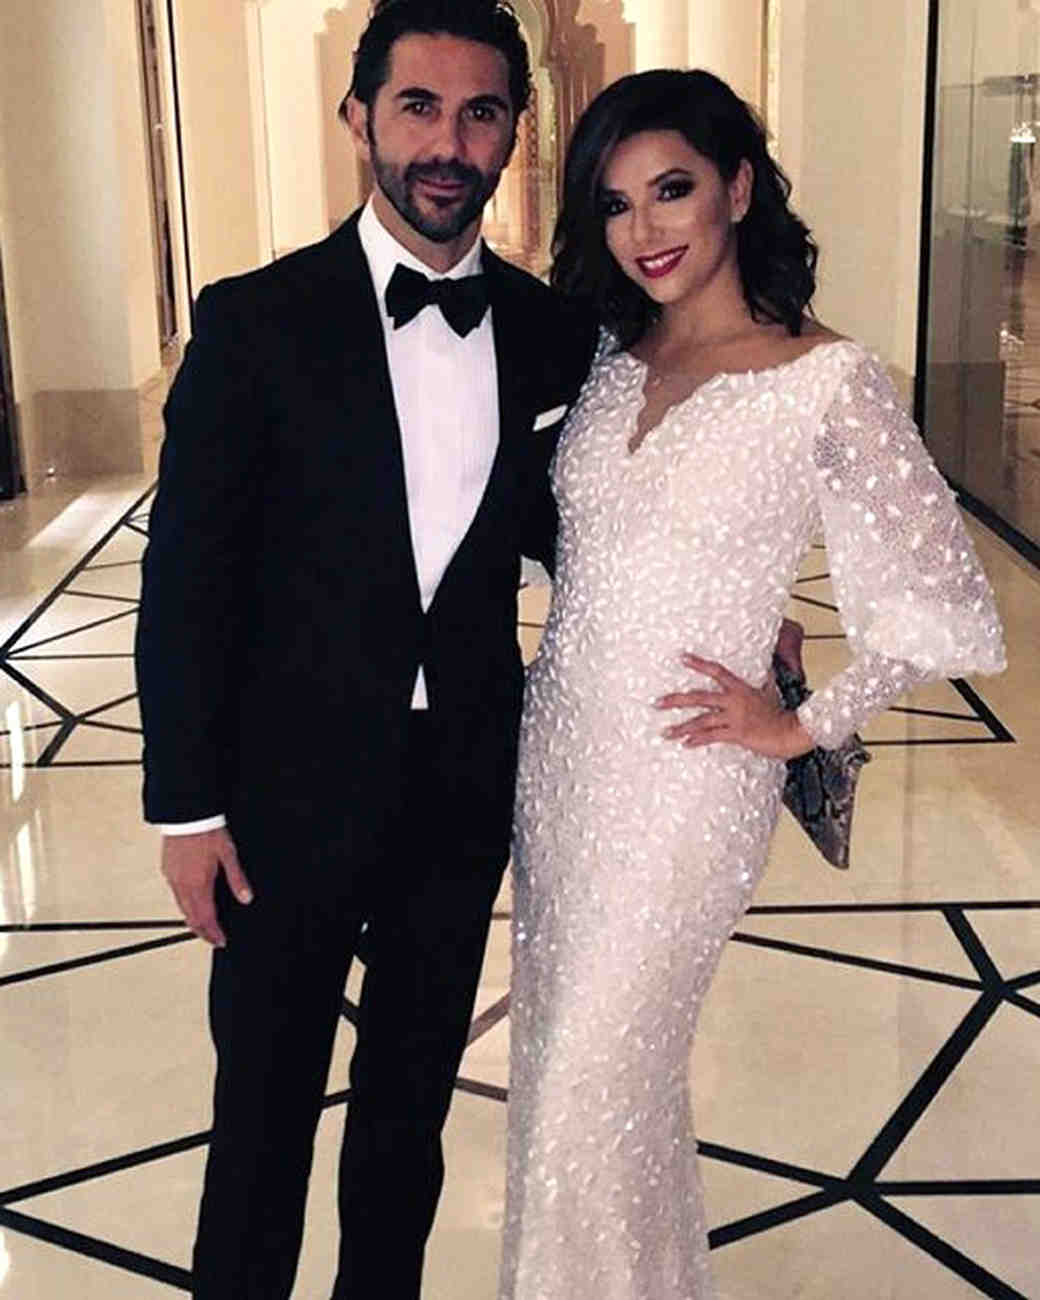 Eva Longoria Dishes On Plans for Her First Thanksgiving With Husband Jose Bastón